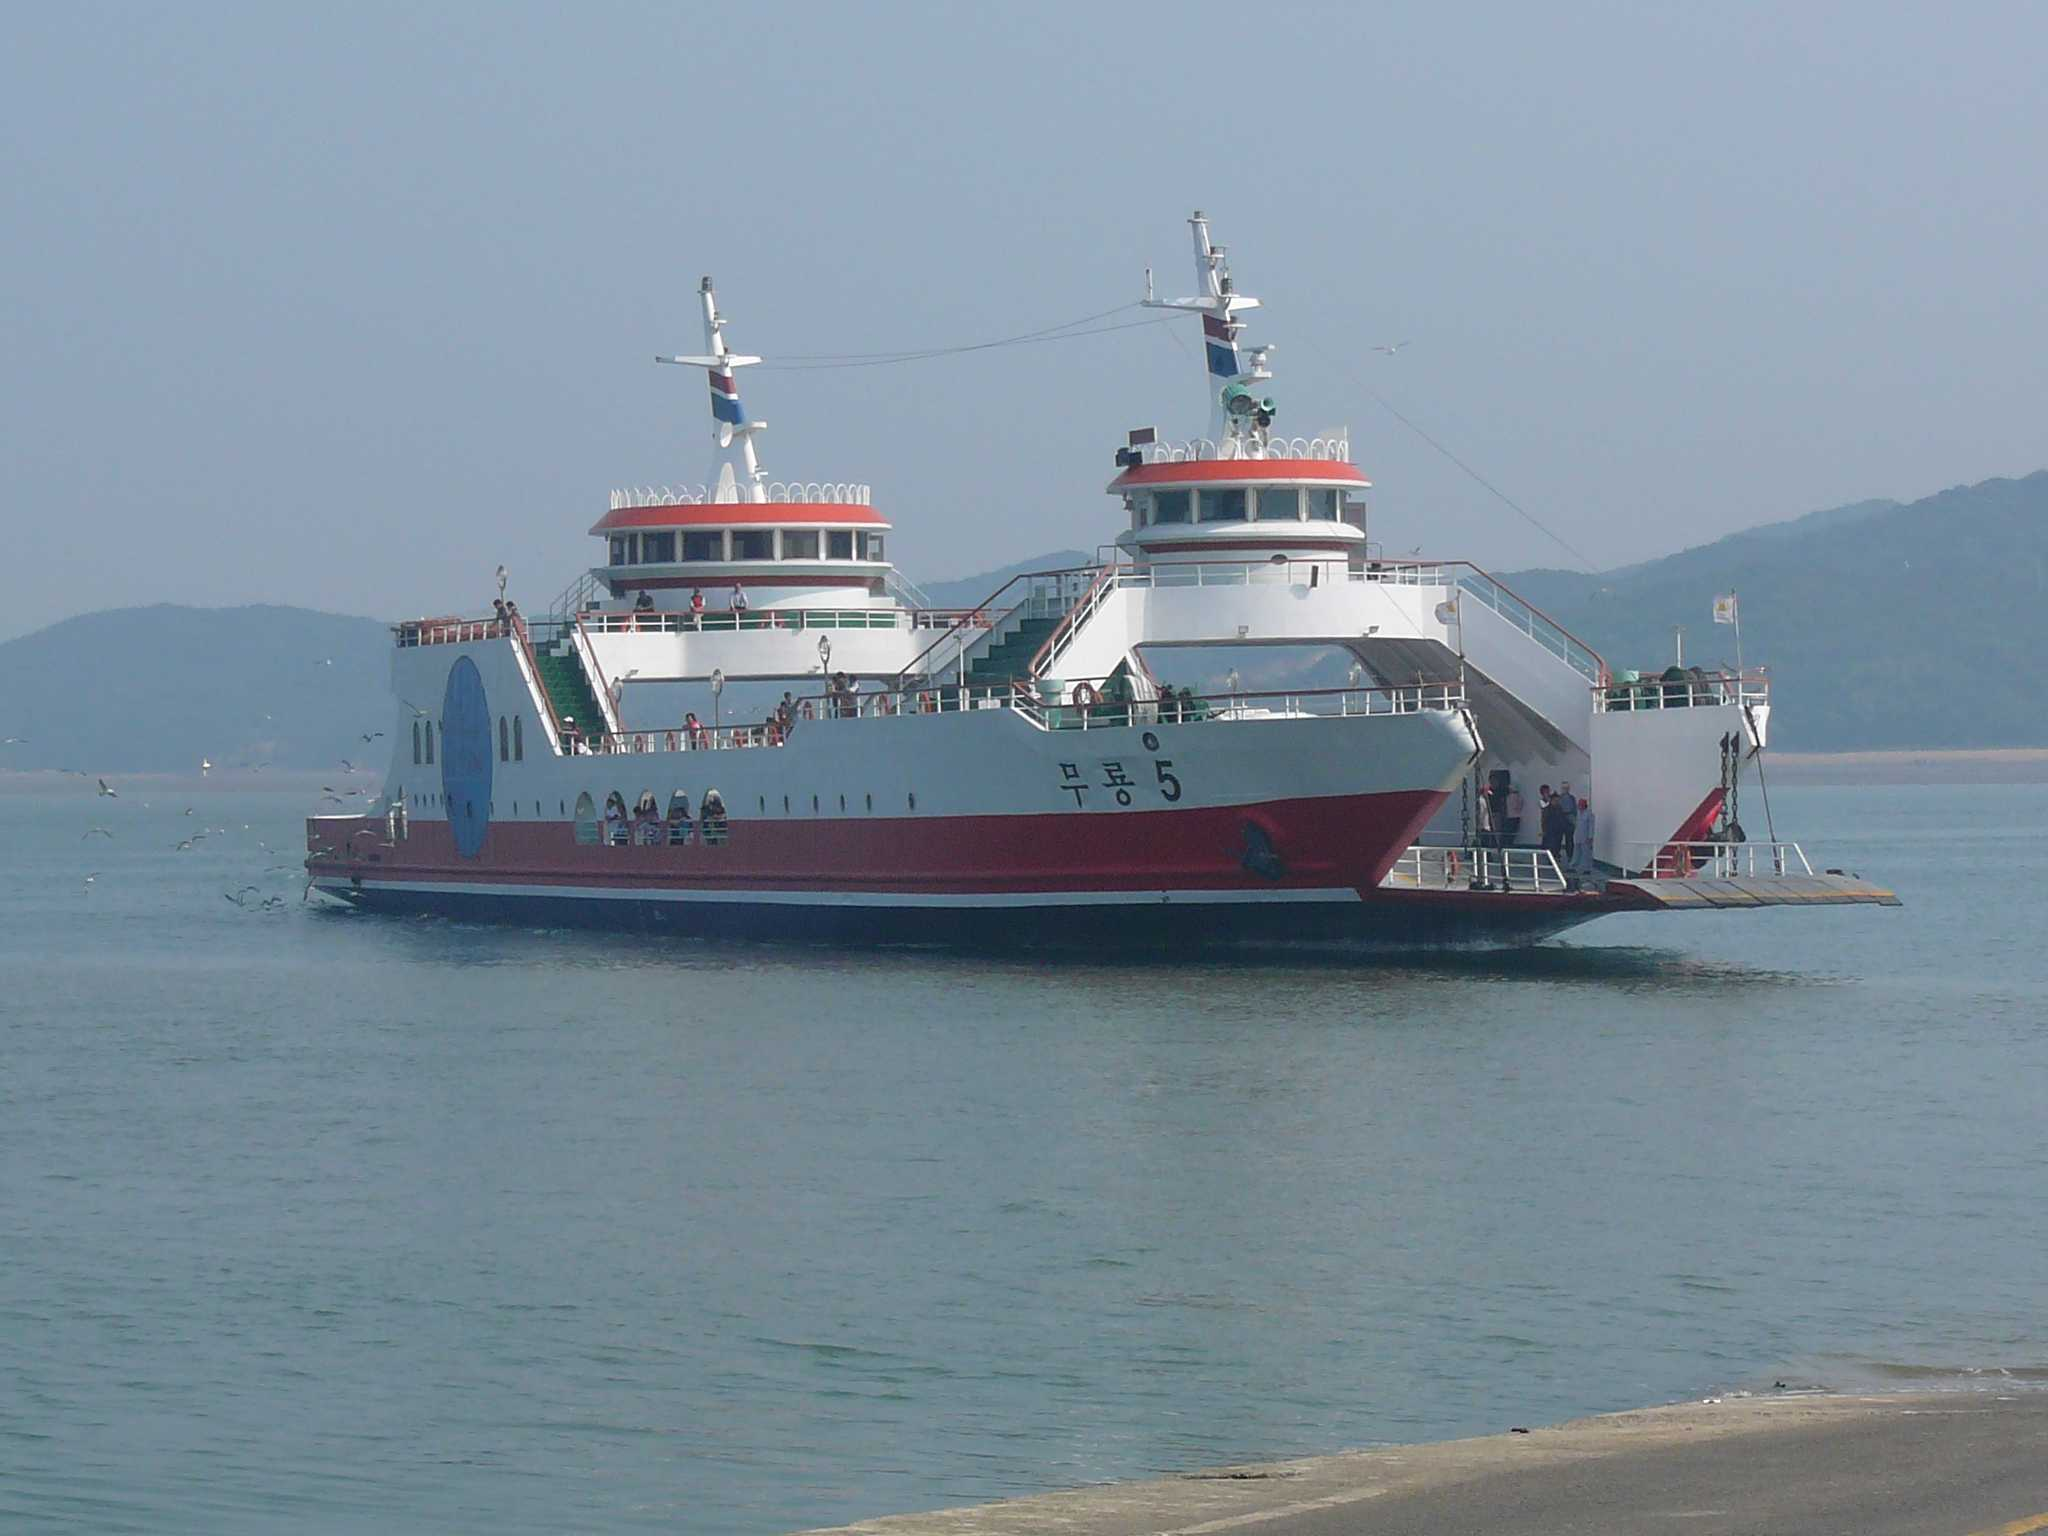 The Sewol South Korean Ferry sank on April 16. Image courtesy of Creative Commons Search.